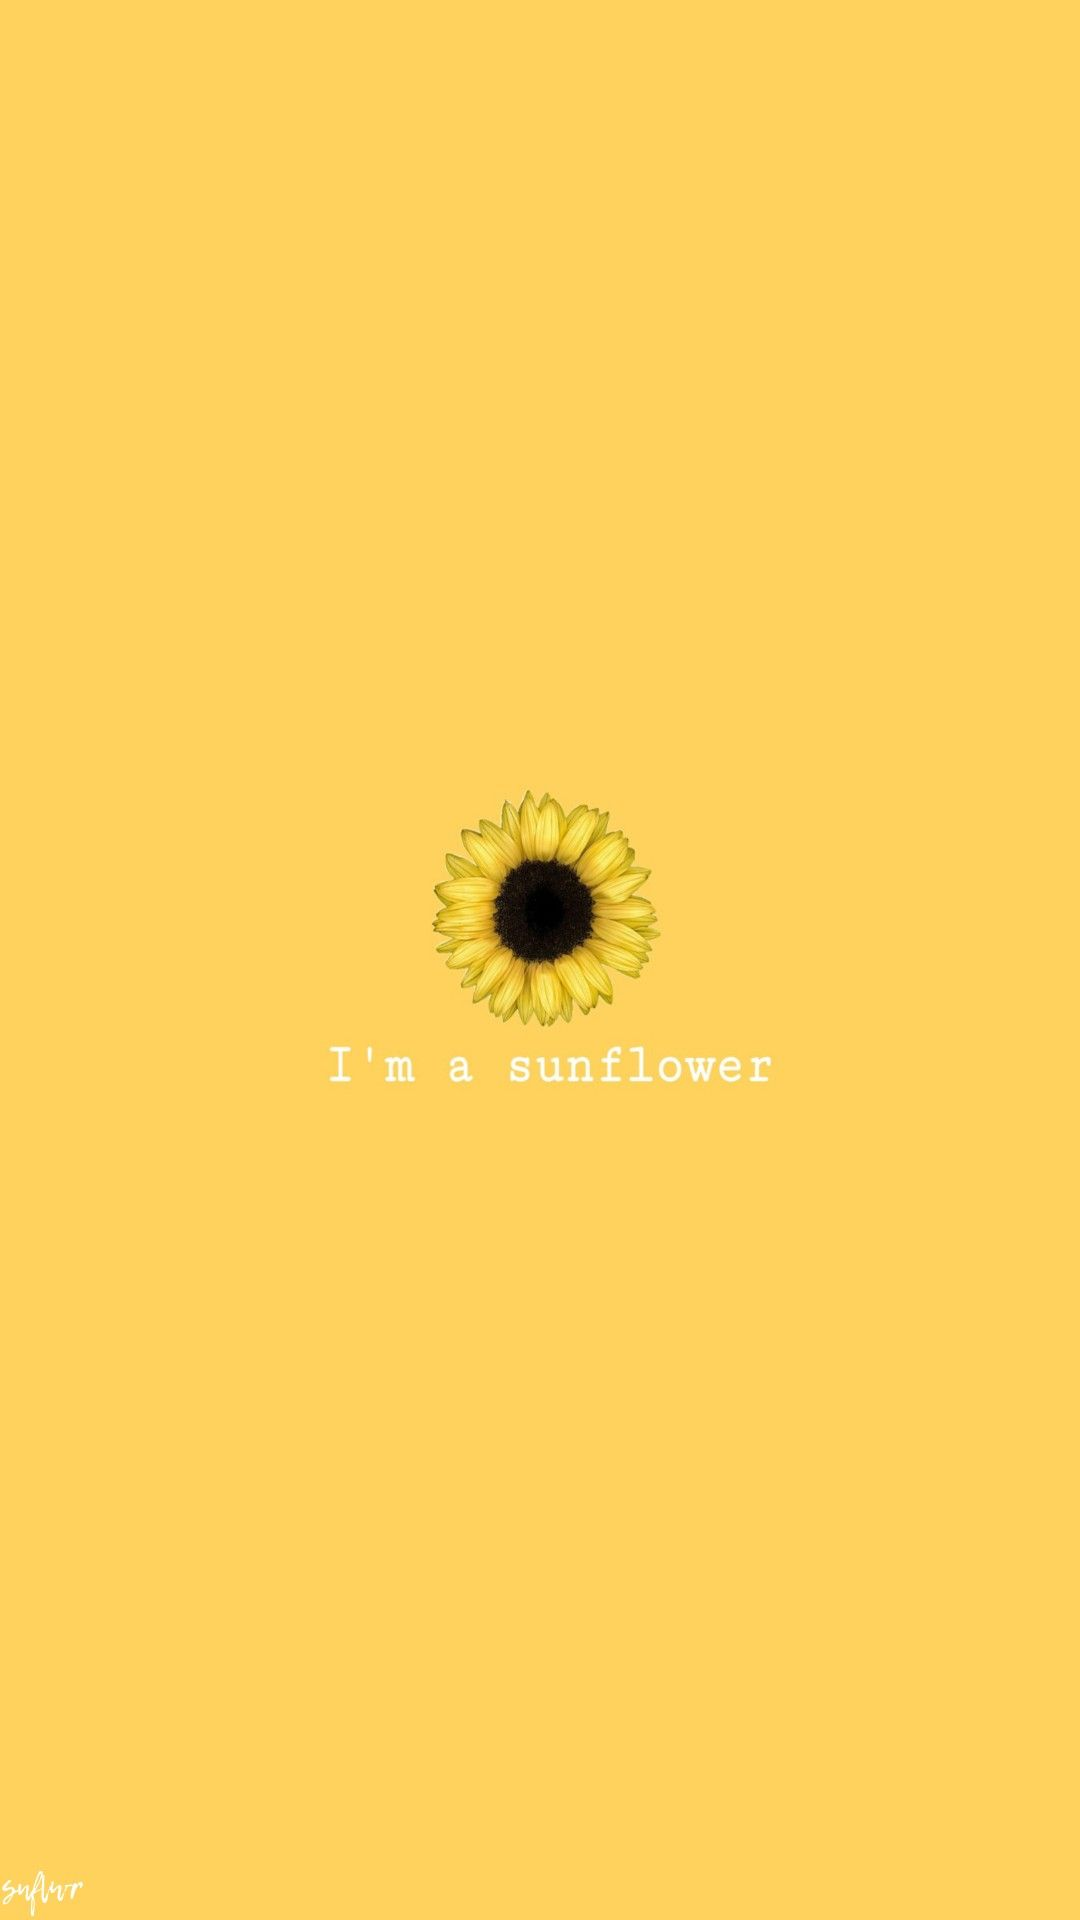 Sunflower Yellow Wallpaper Sunflower Wallpaper Cute Wallpapers